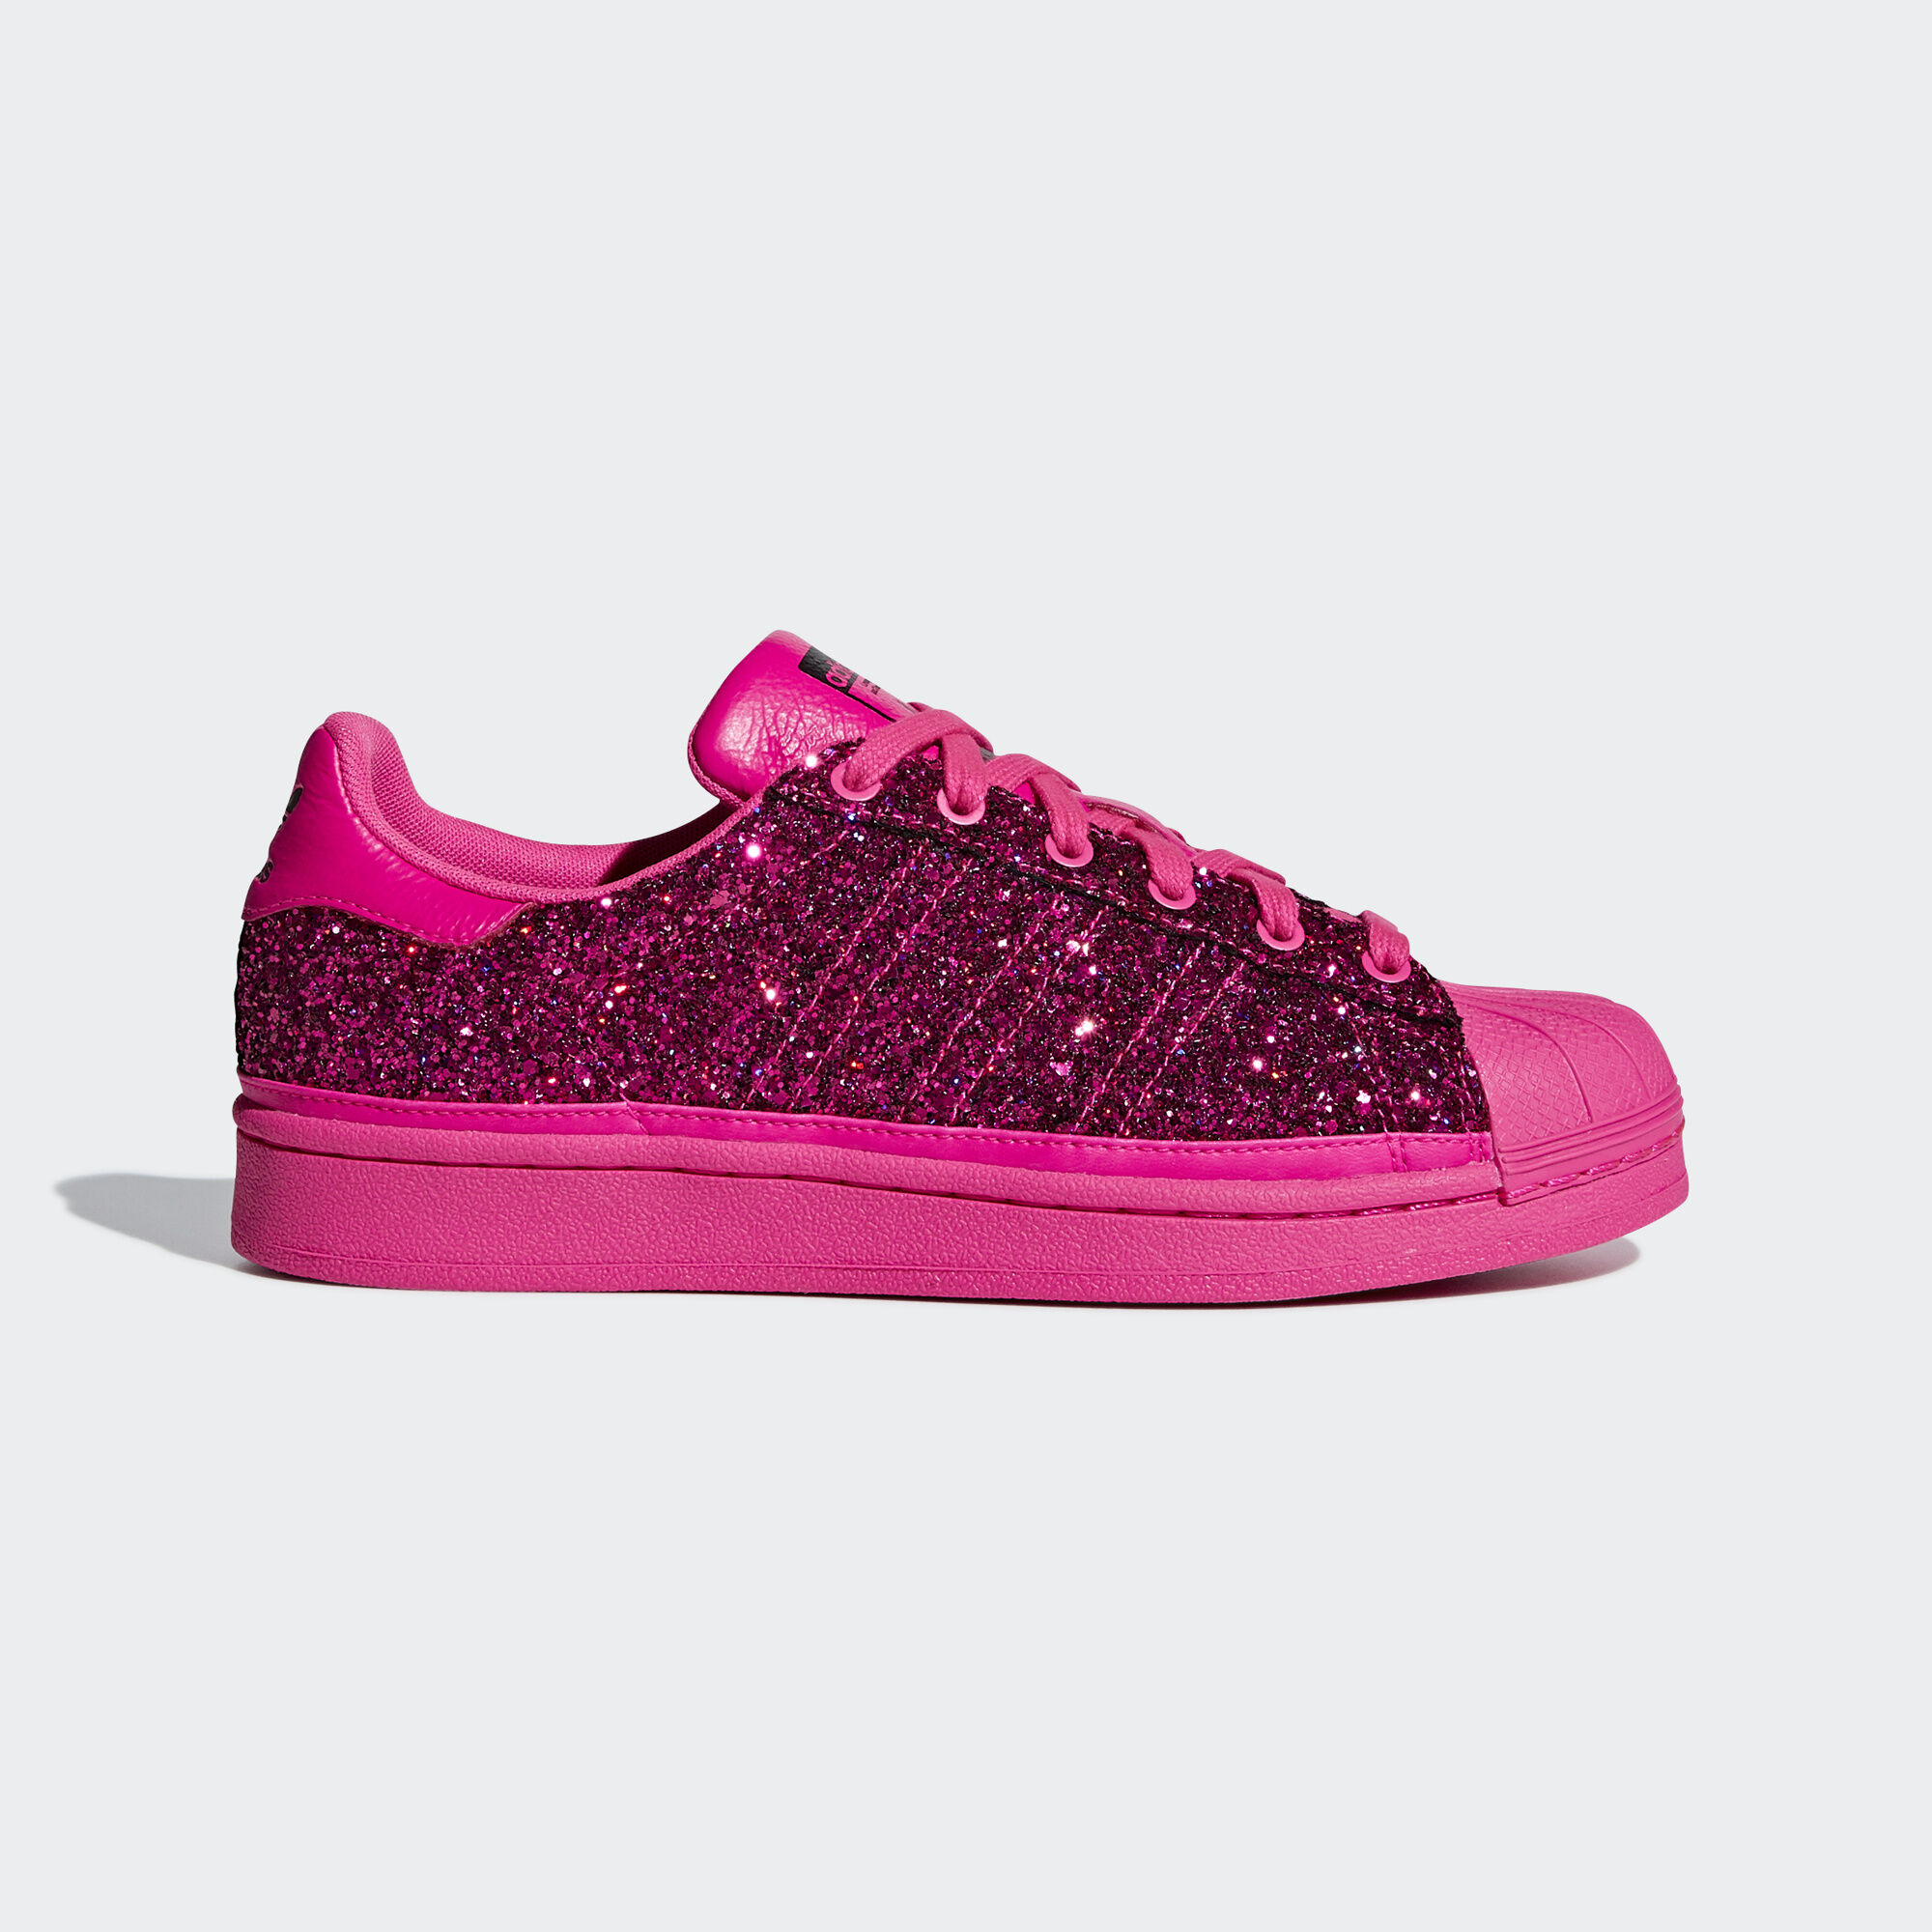 c5853909a39 adidas - Superstar Shoes Shock Pink   Shock Pink   Collegiate Purple BD8054